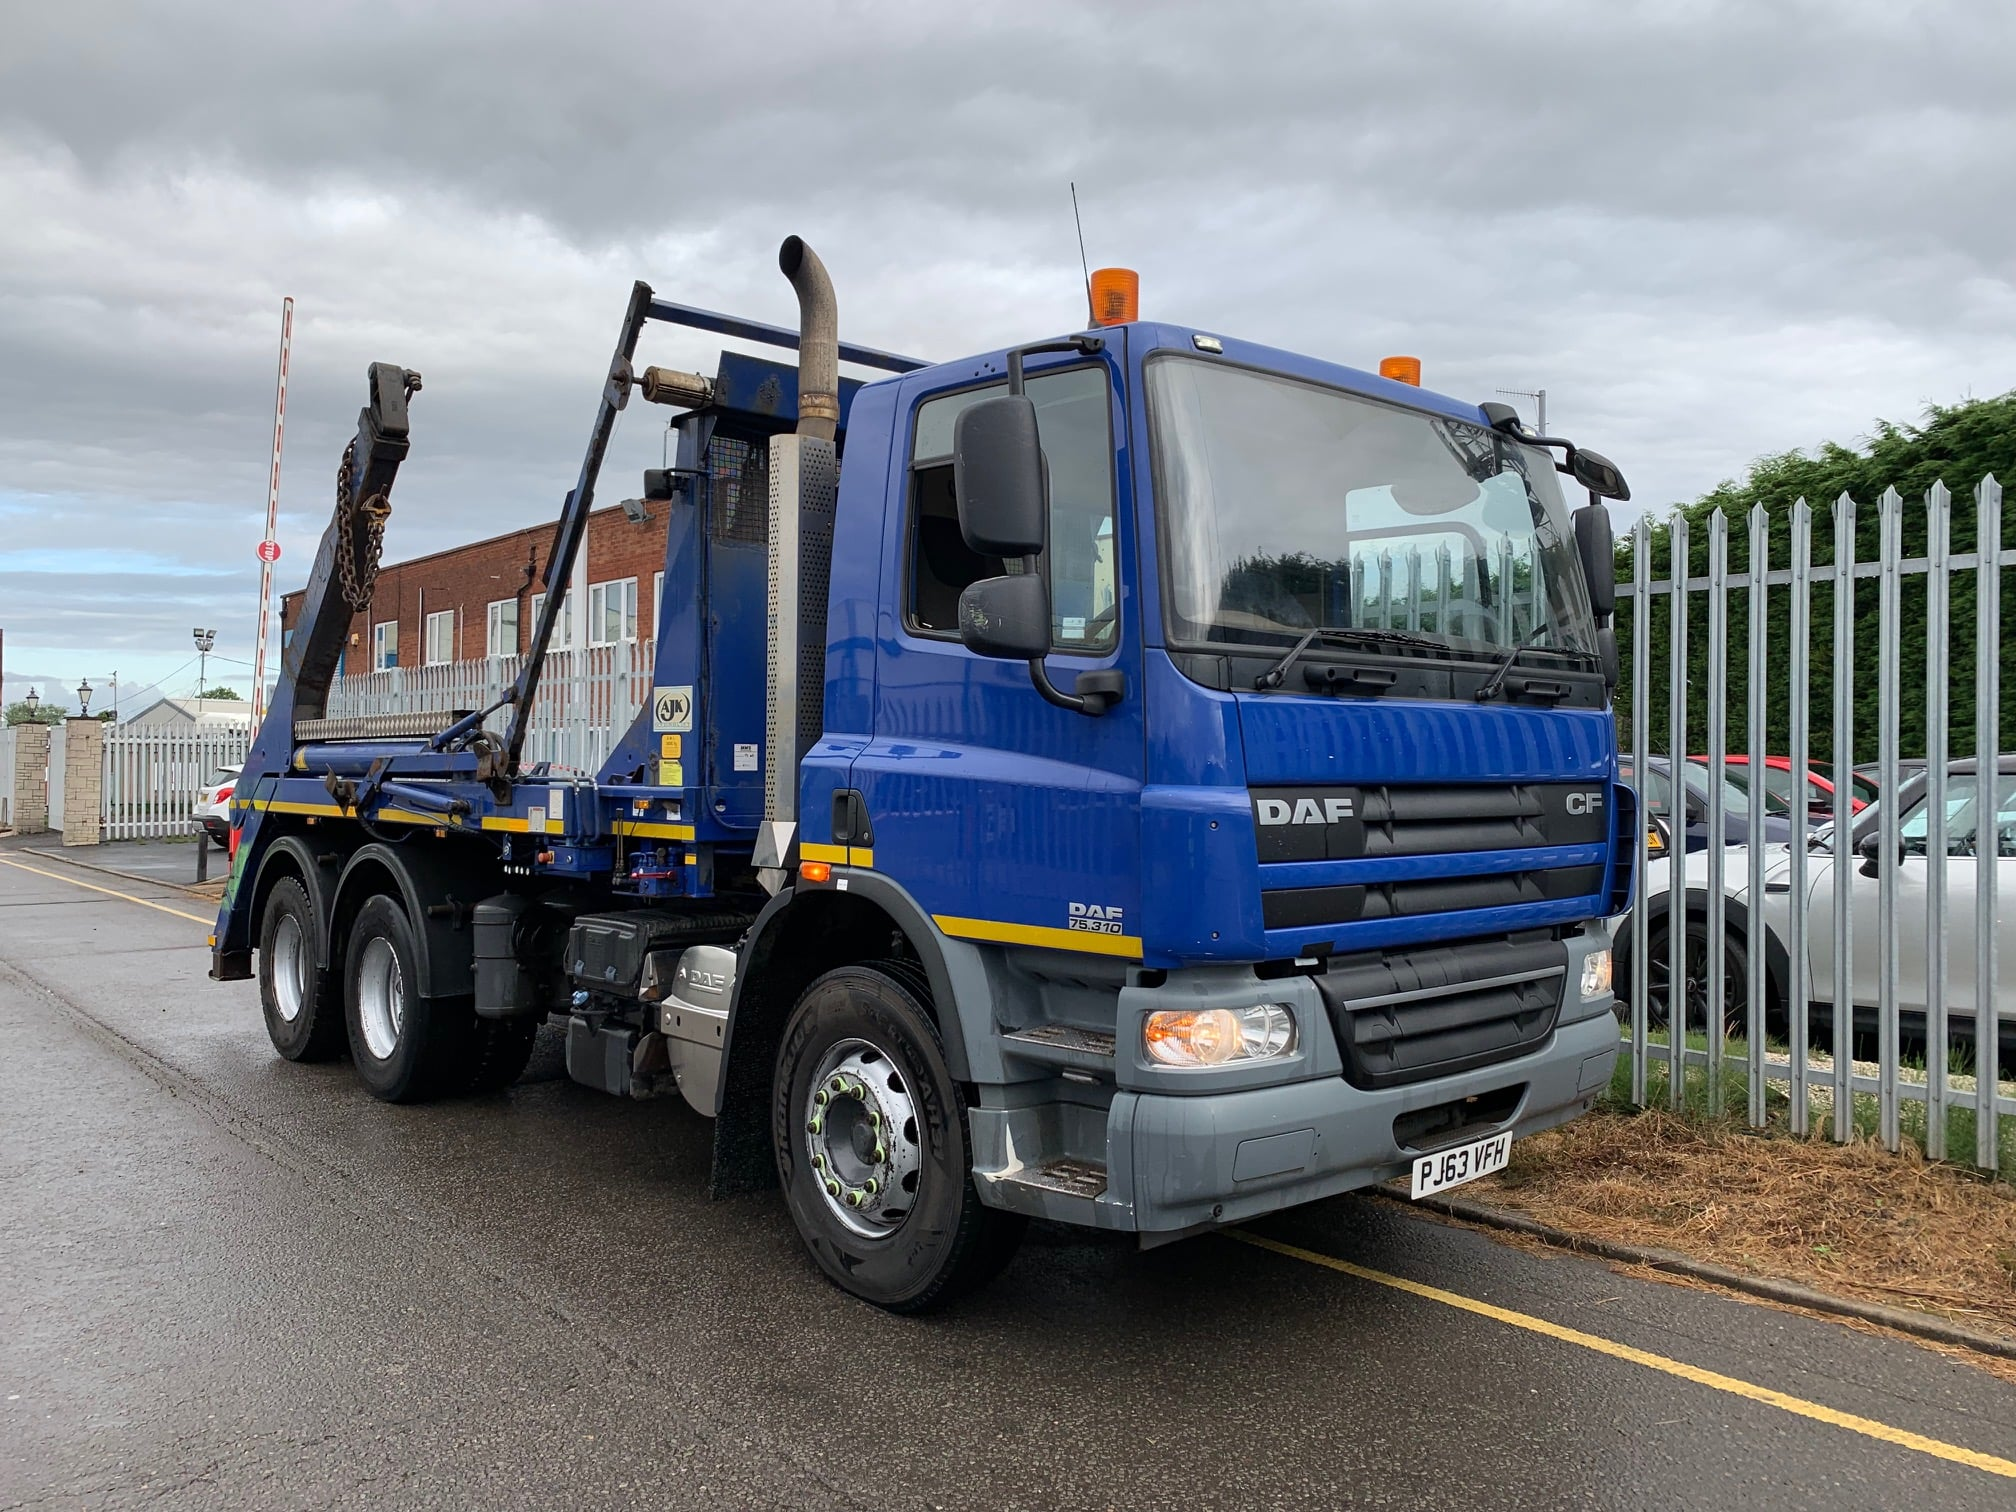 2013 Daf. 18 Tonne Skip Loader, AJK Extendable Equipment, Euro 5, 310bhp, Automatic Gearbox, Day Cab, Camera System, 316,800km, Steering Wheel Controls.